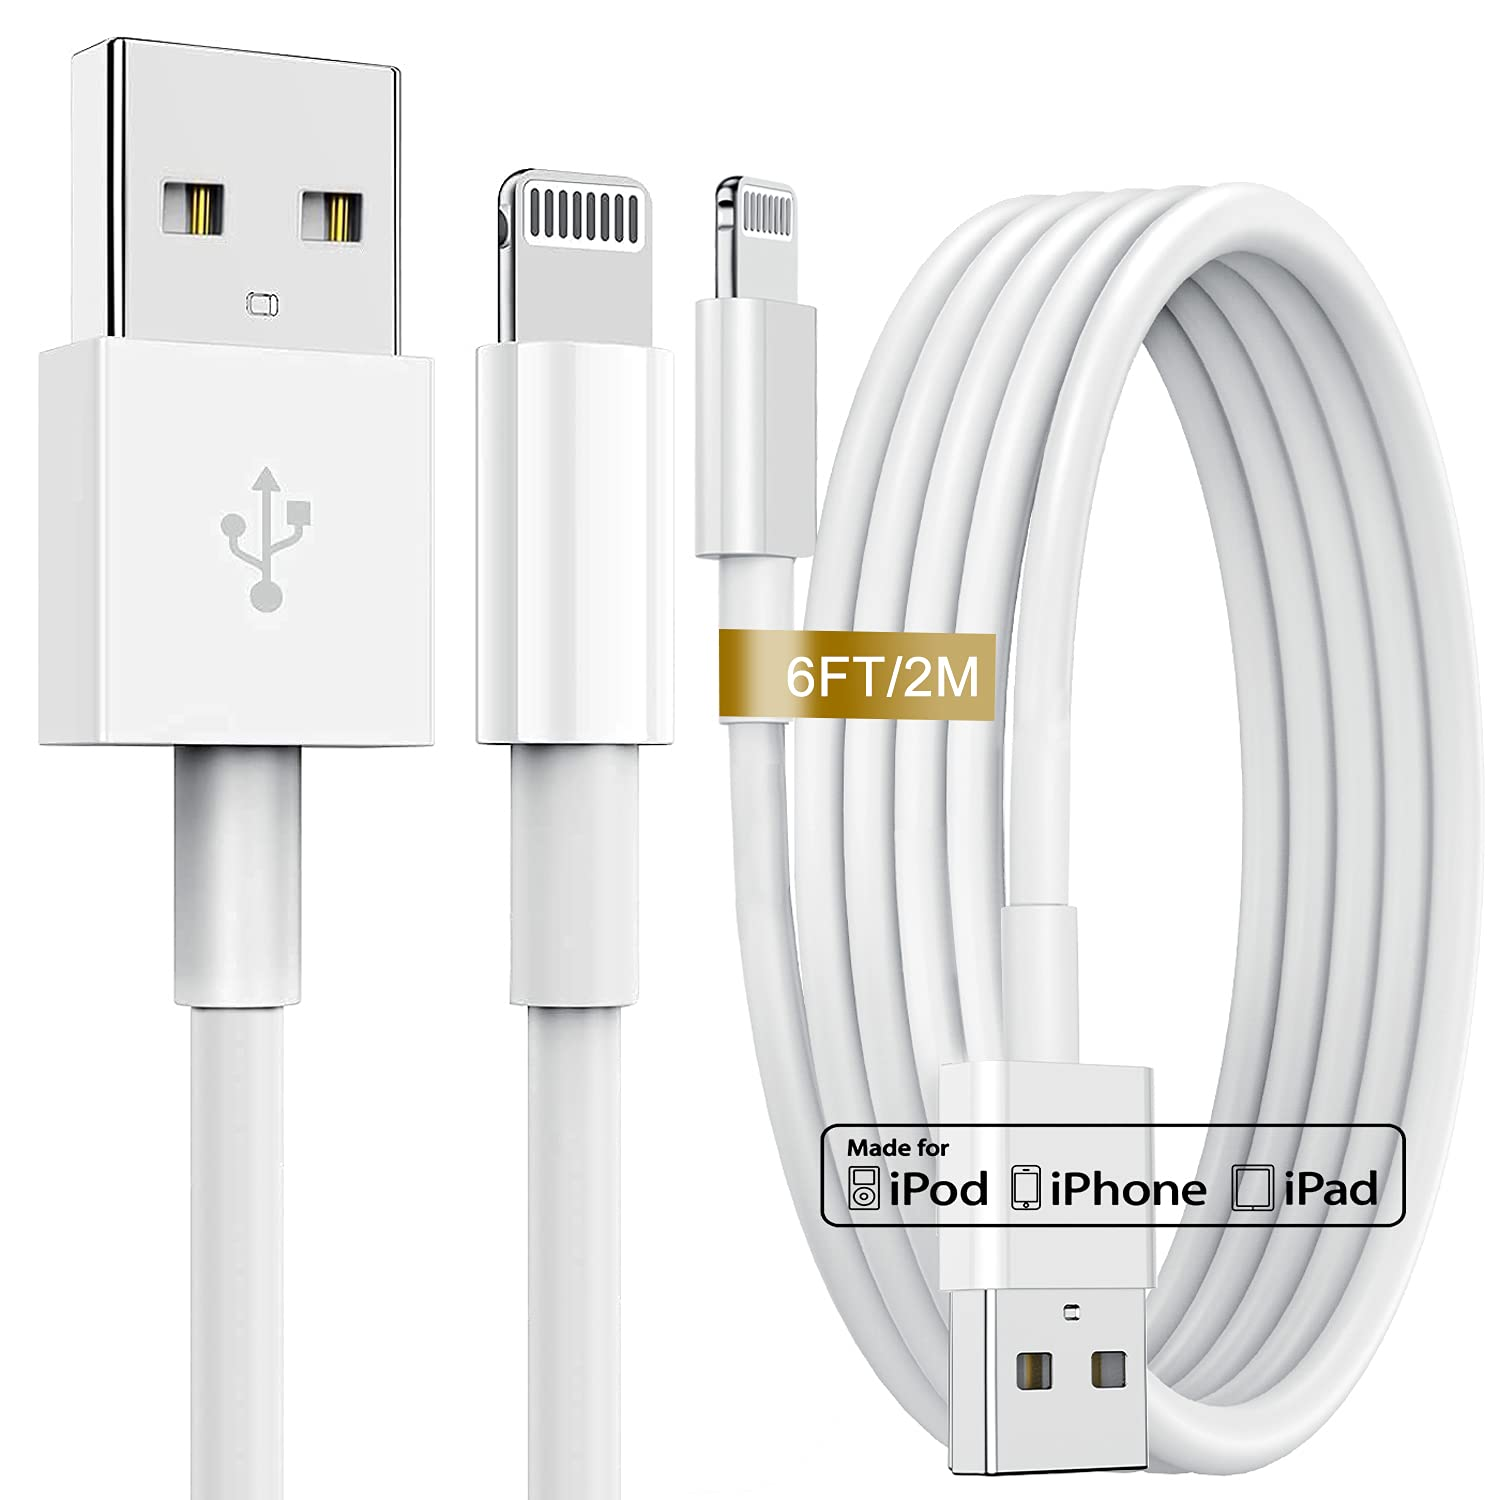 6Ft iPhone Charger Cable (2 Pack), [Apple MFi Certified] Lightning to USB Cable 6 Foot, Fast Charging Cord 6 Feet Compatible with iPhone 12 Mini 11 Pro MAX XS XR X 8 7 6 AirPods iPad etc - White